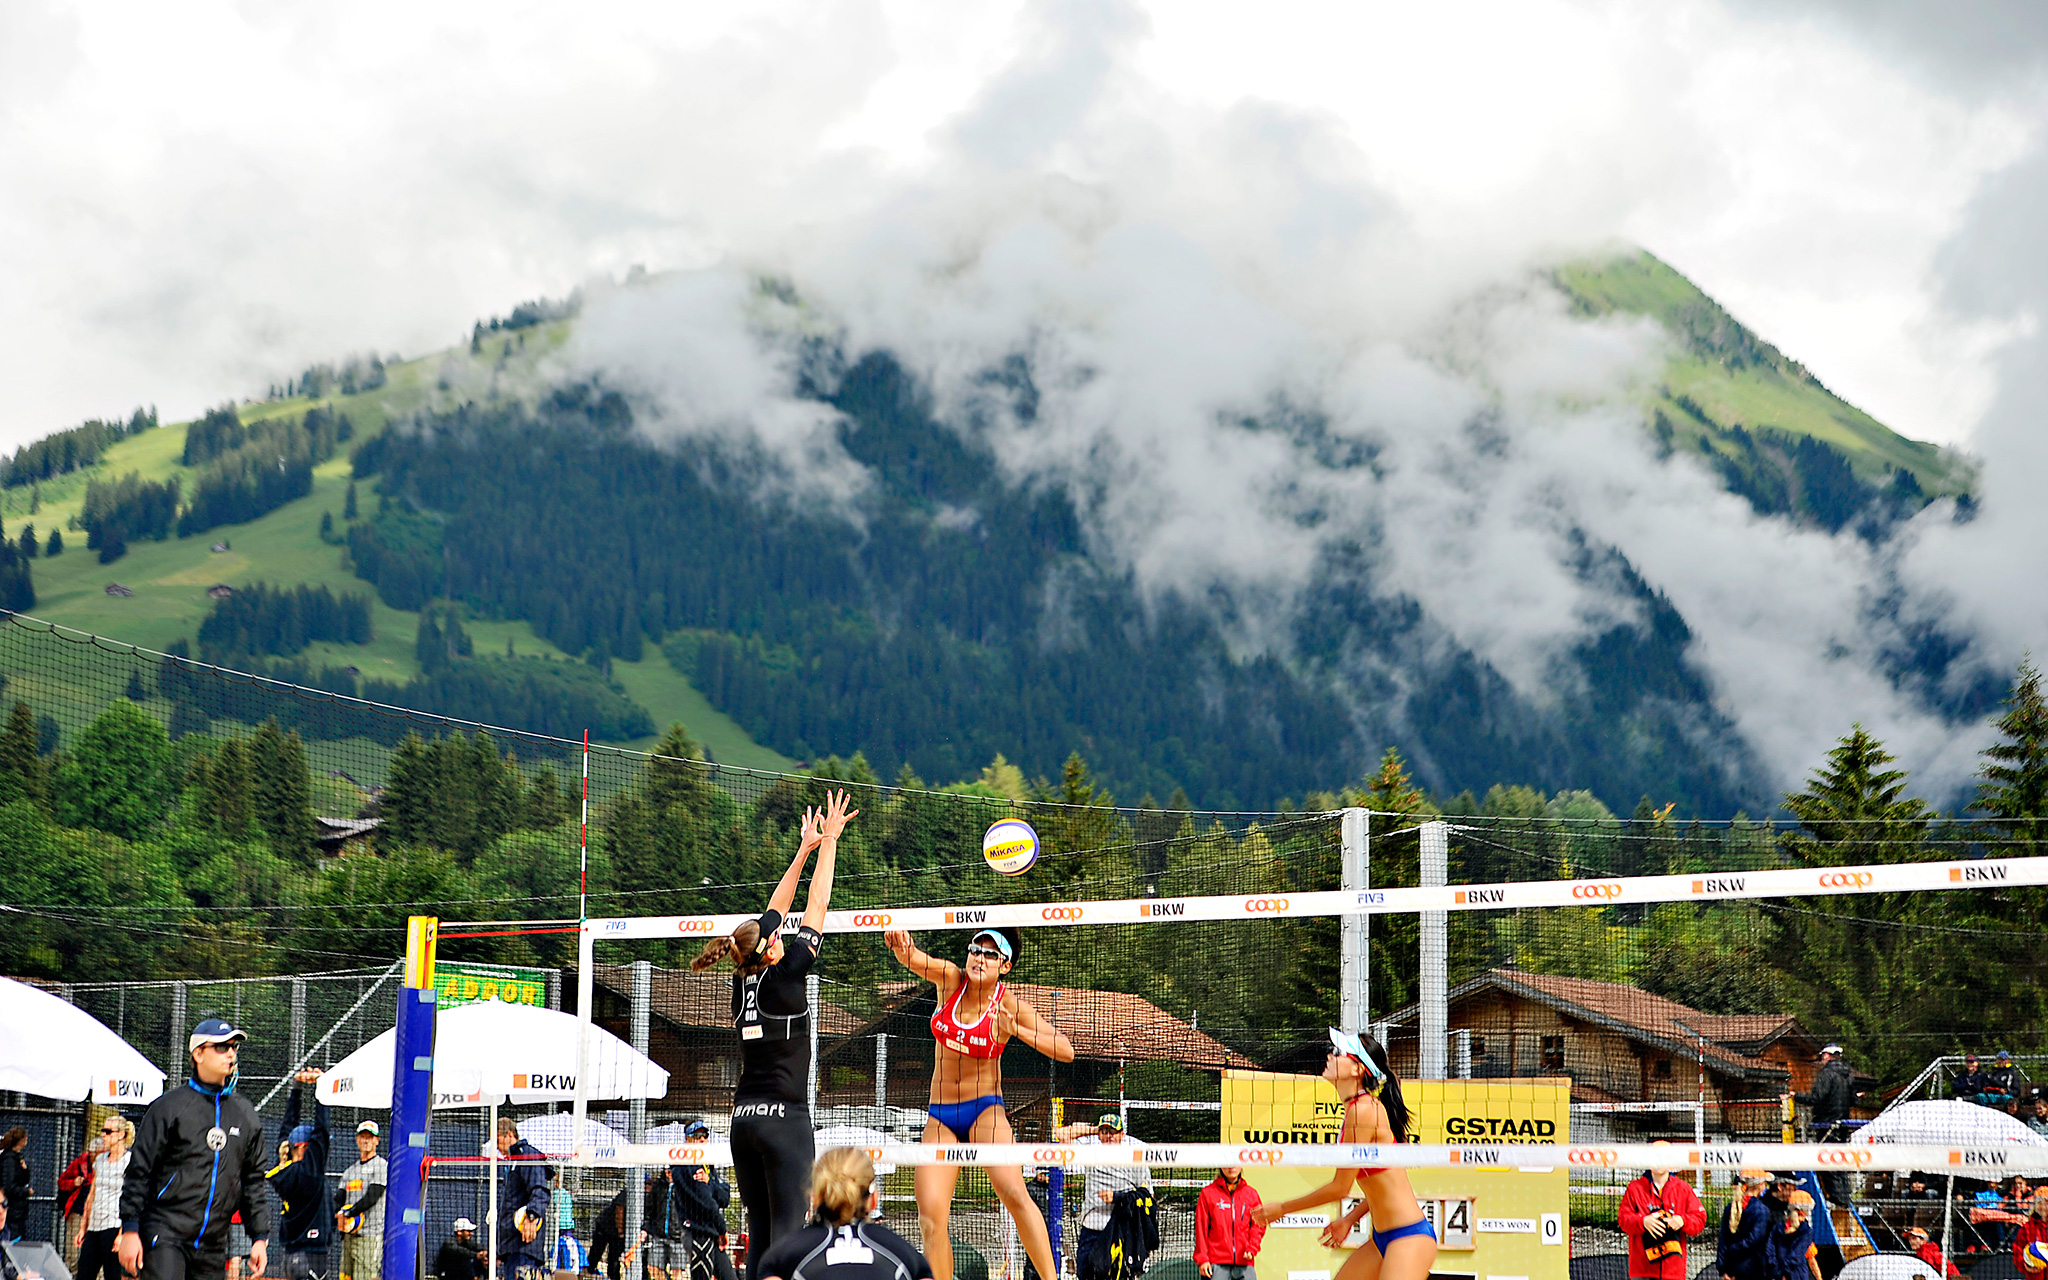 Germany's Ilka Semmler and Katrin Holtwick, left, compete against China's Xinyi Xia and Yuanyuan Ma during the second day of the FIVB Gstaad Grand Slam volleyball tournament in Switzerland.